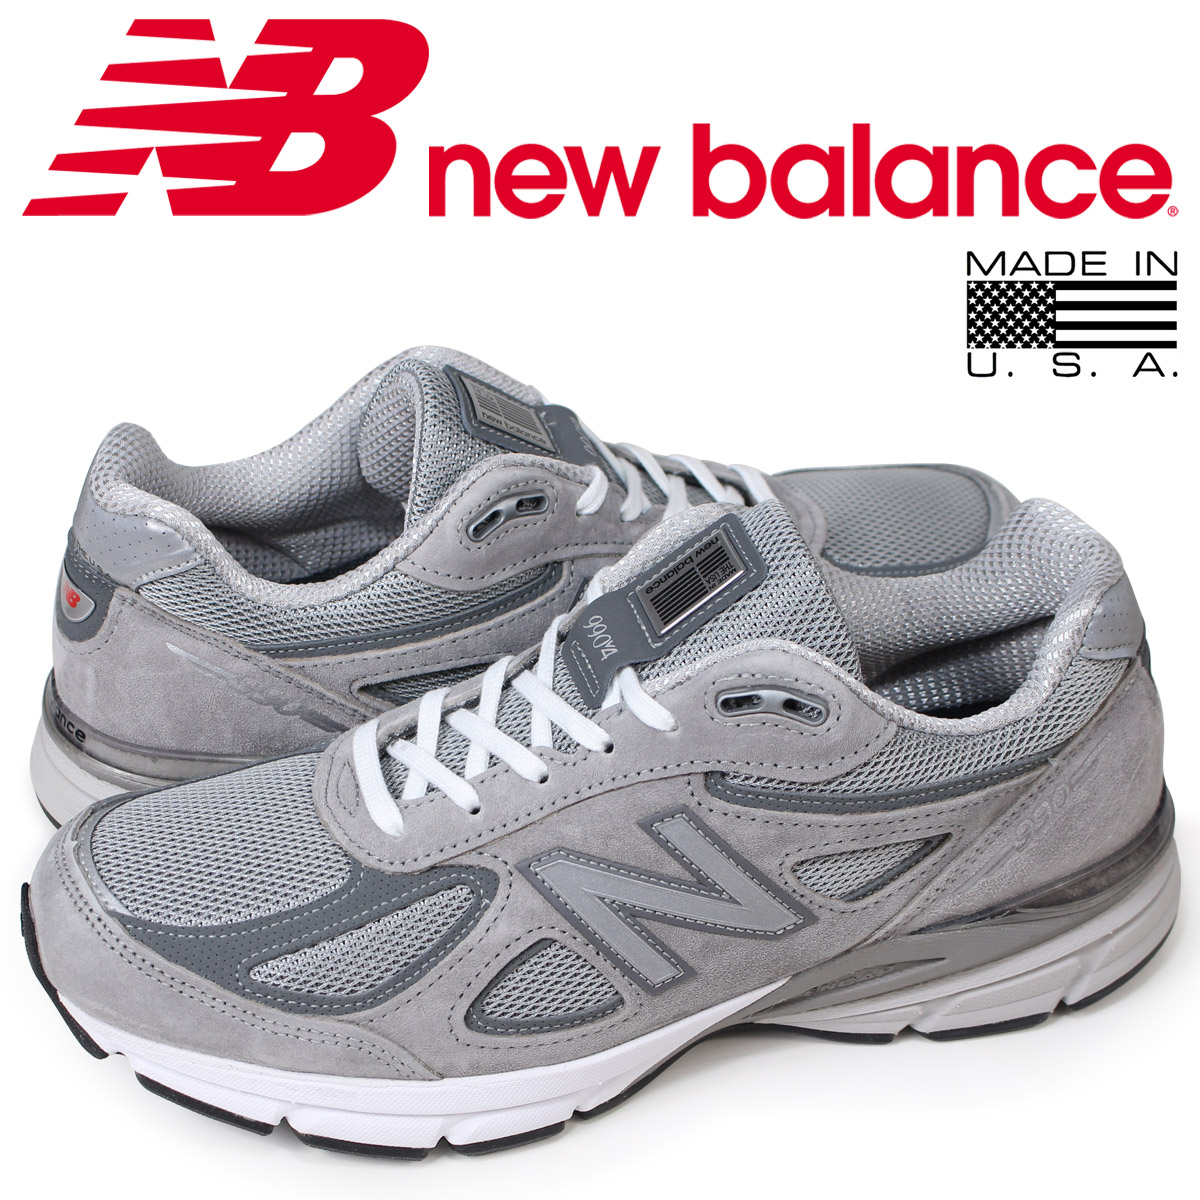 sale retailer 7719a b5745 New Balance new balance 990 sneakers men D Wise gray M990GL4